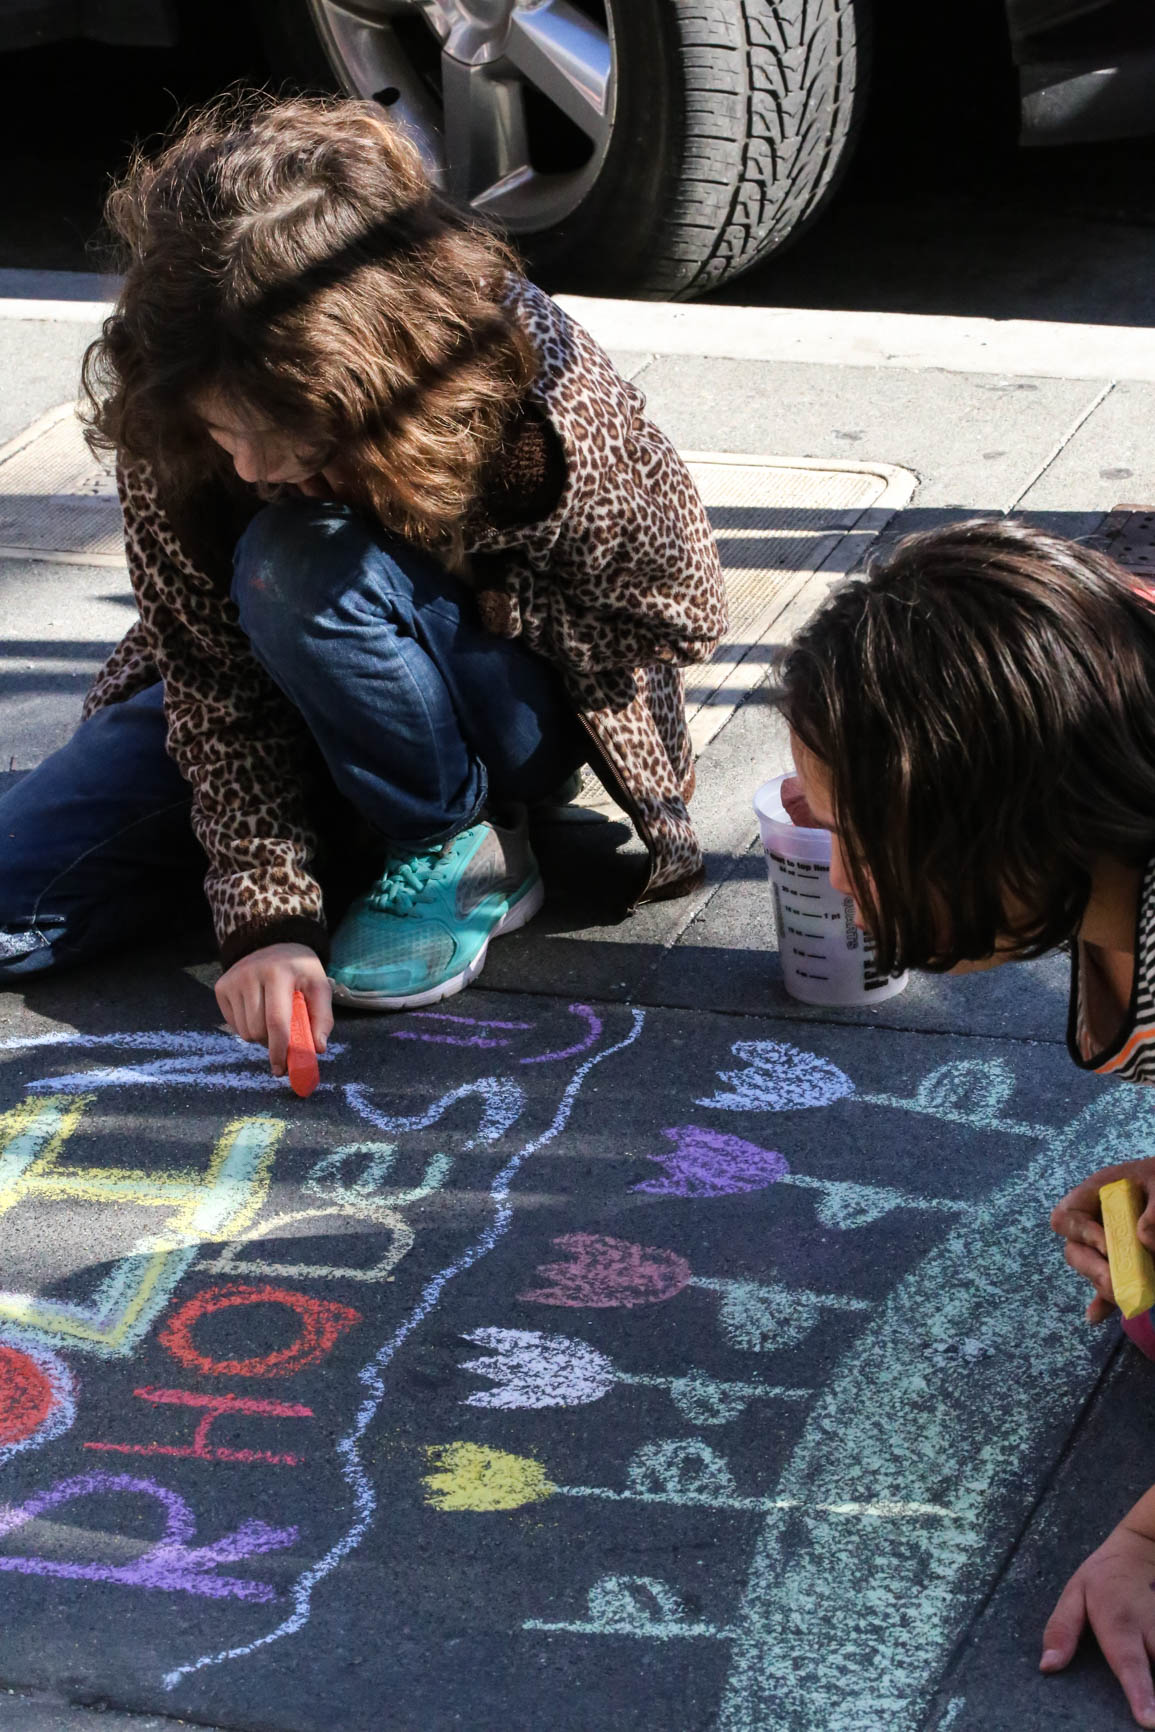 Emily Clayson (11) & Paola Fonseca (10), students at the Harvey Milk Civil Rights Academy, INSCRIBE the names of the men and women who died of AIDS. Thursday, December 1, 2016, San Francisco, California (Jessica Webb).